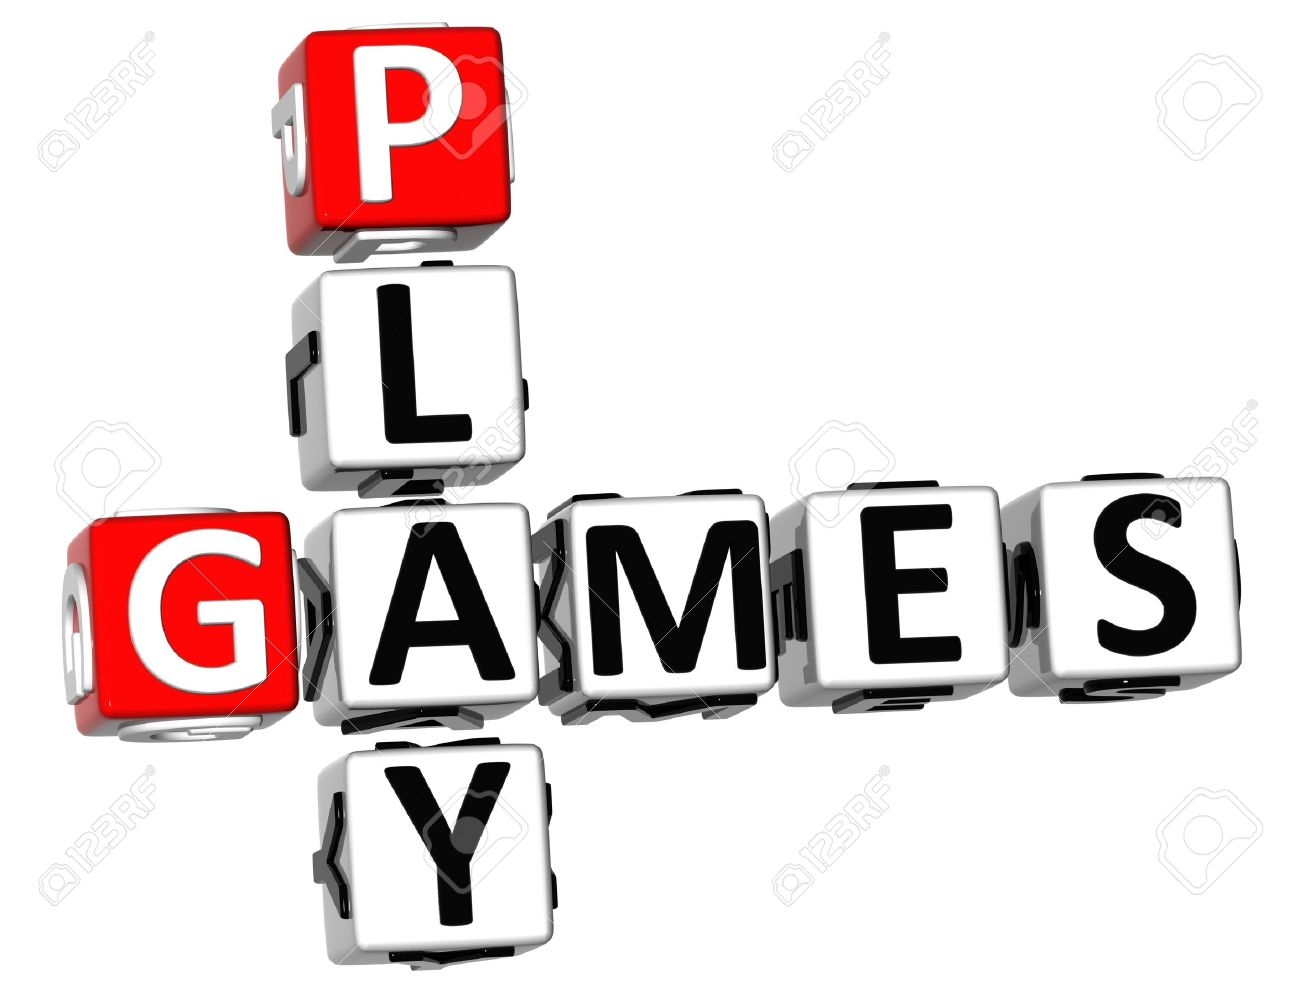 3D Play Games Crossword On White Background Stock Photo